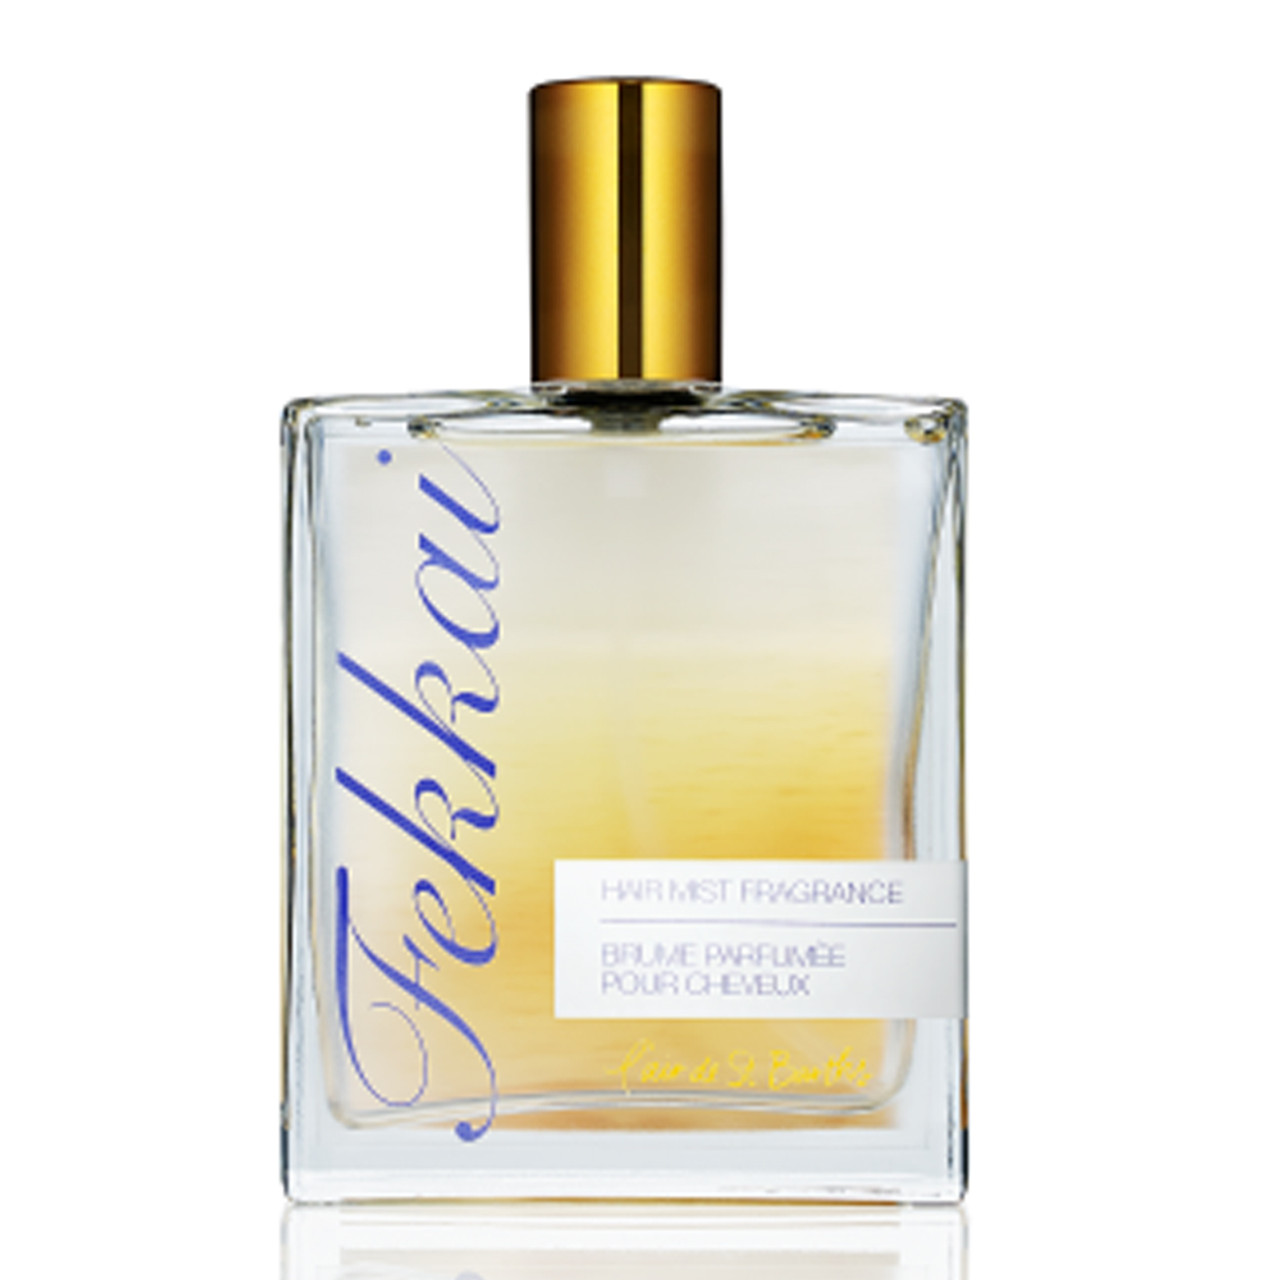 d0acc53537f Fekkai Hair Fragrance Mist St. Barths at BeautifiedYou.com